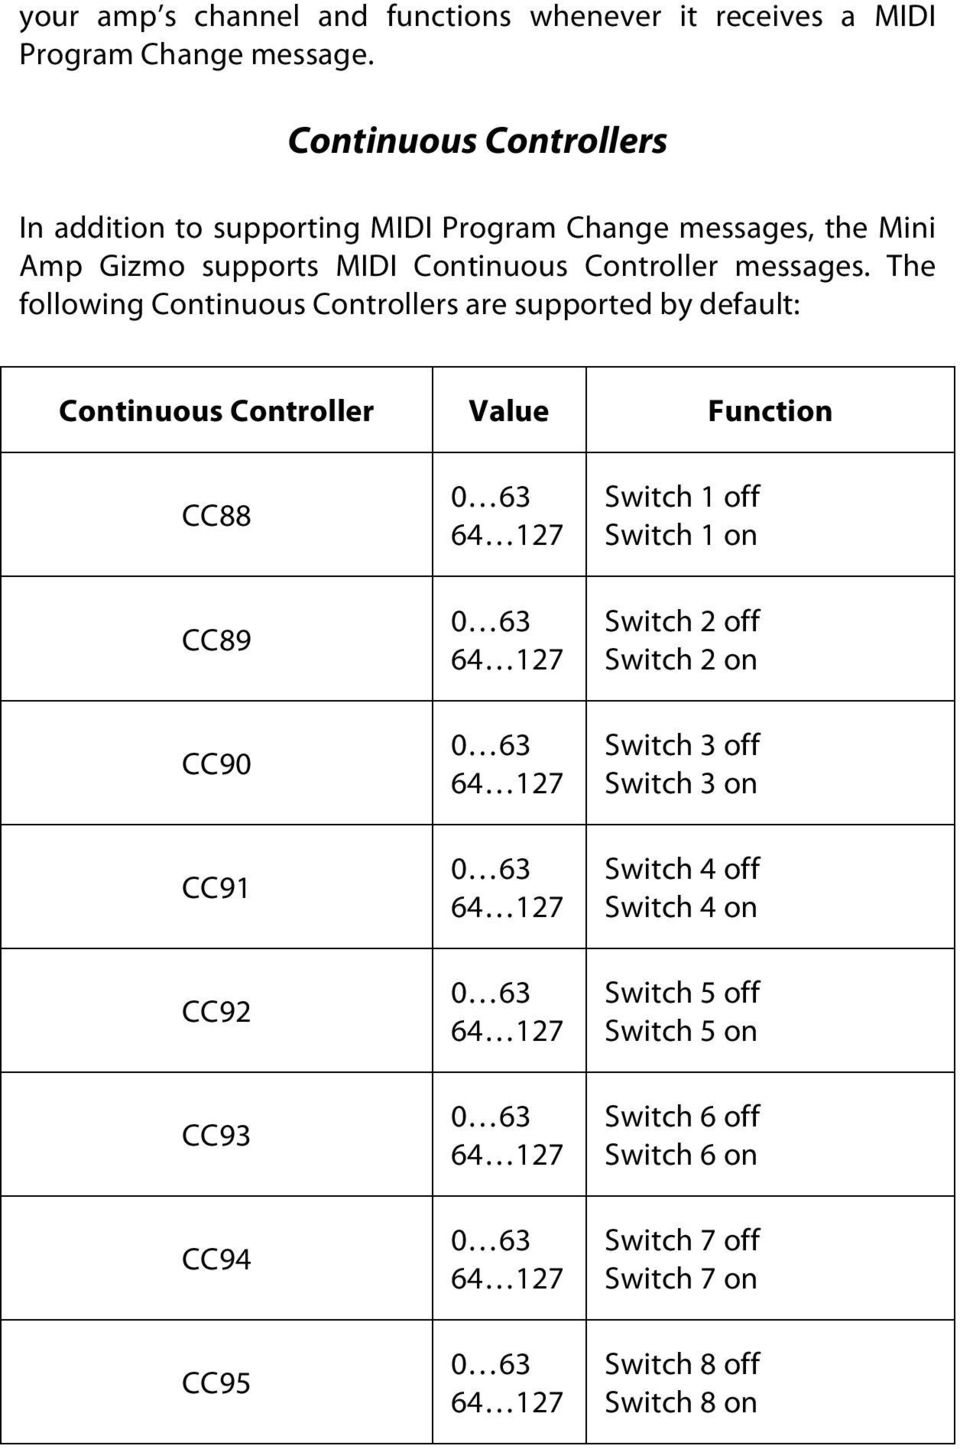 The following Continuous Controllers are supported by default: Continuous Controller Value Function CC88 CC89 CC90 CC91 CC92 CC93 CC94 CC95 0 63 64 127 0 63 64 127 0